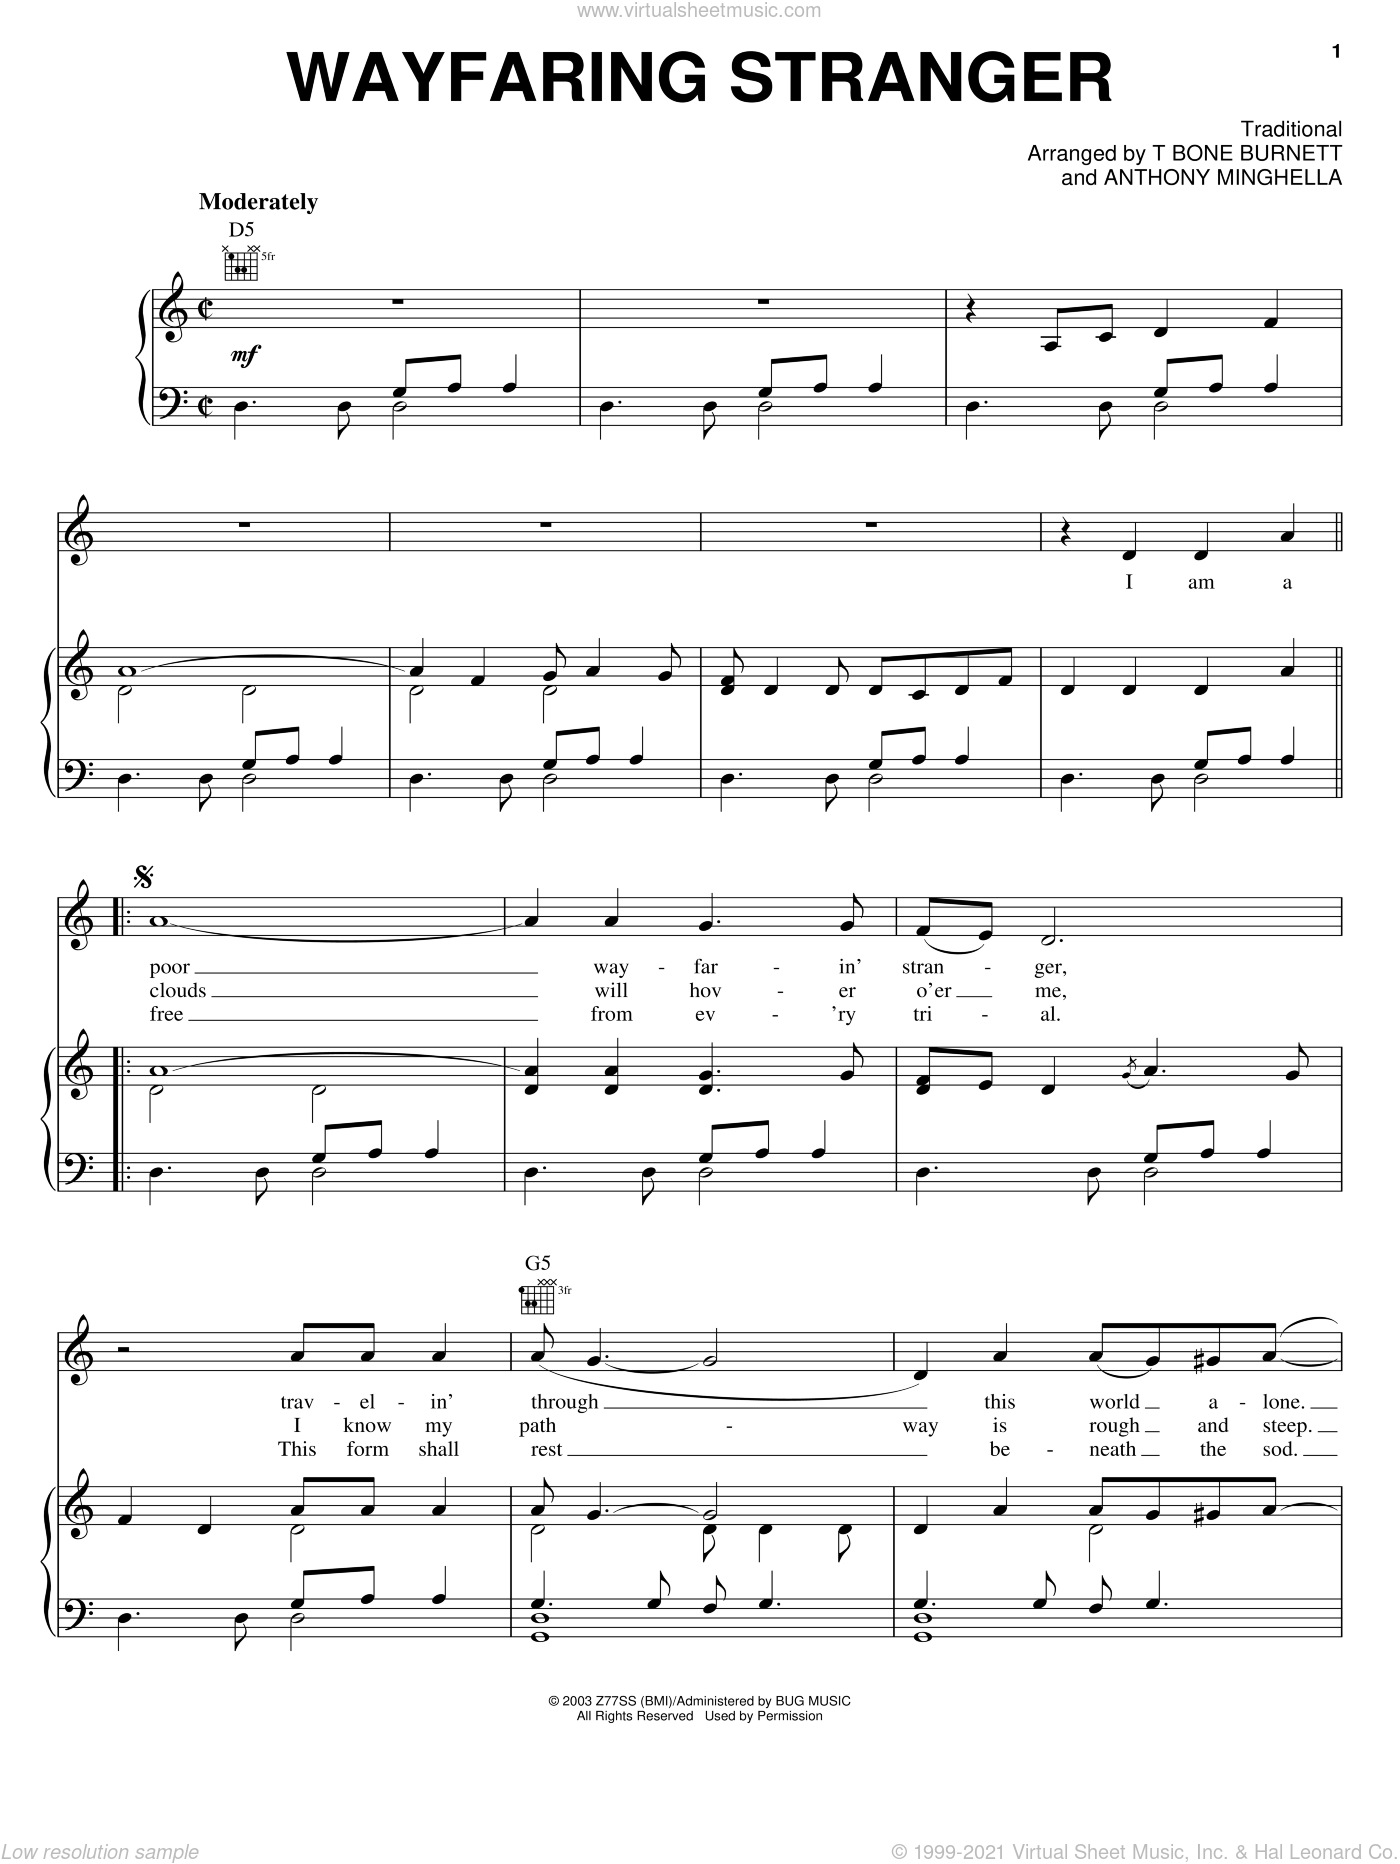 Wayfaring Stranger sheet music for voice, piano or guitar by Jack White, Cold Mountain (Movie), Johnny Cash, Anthony Minghella and T-Bone Burnett, intermediate skill level